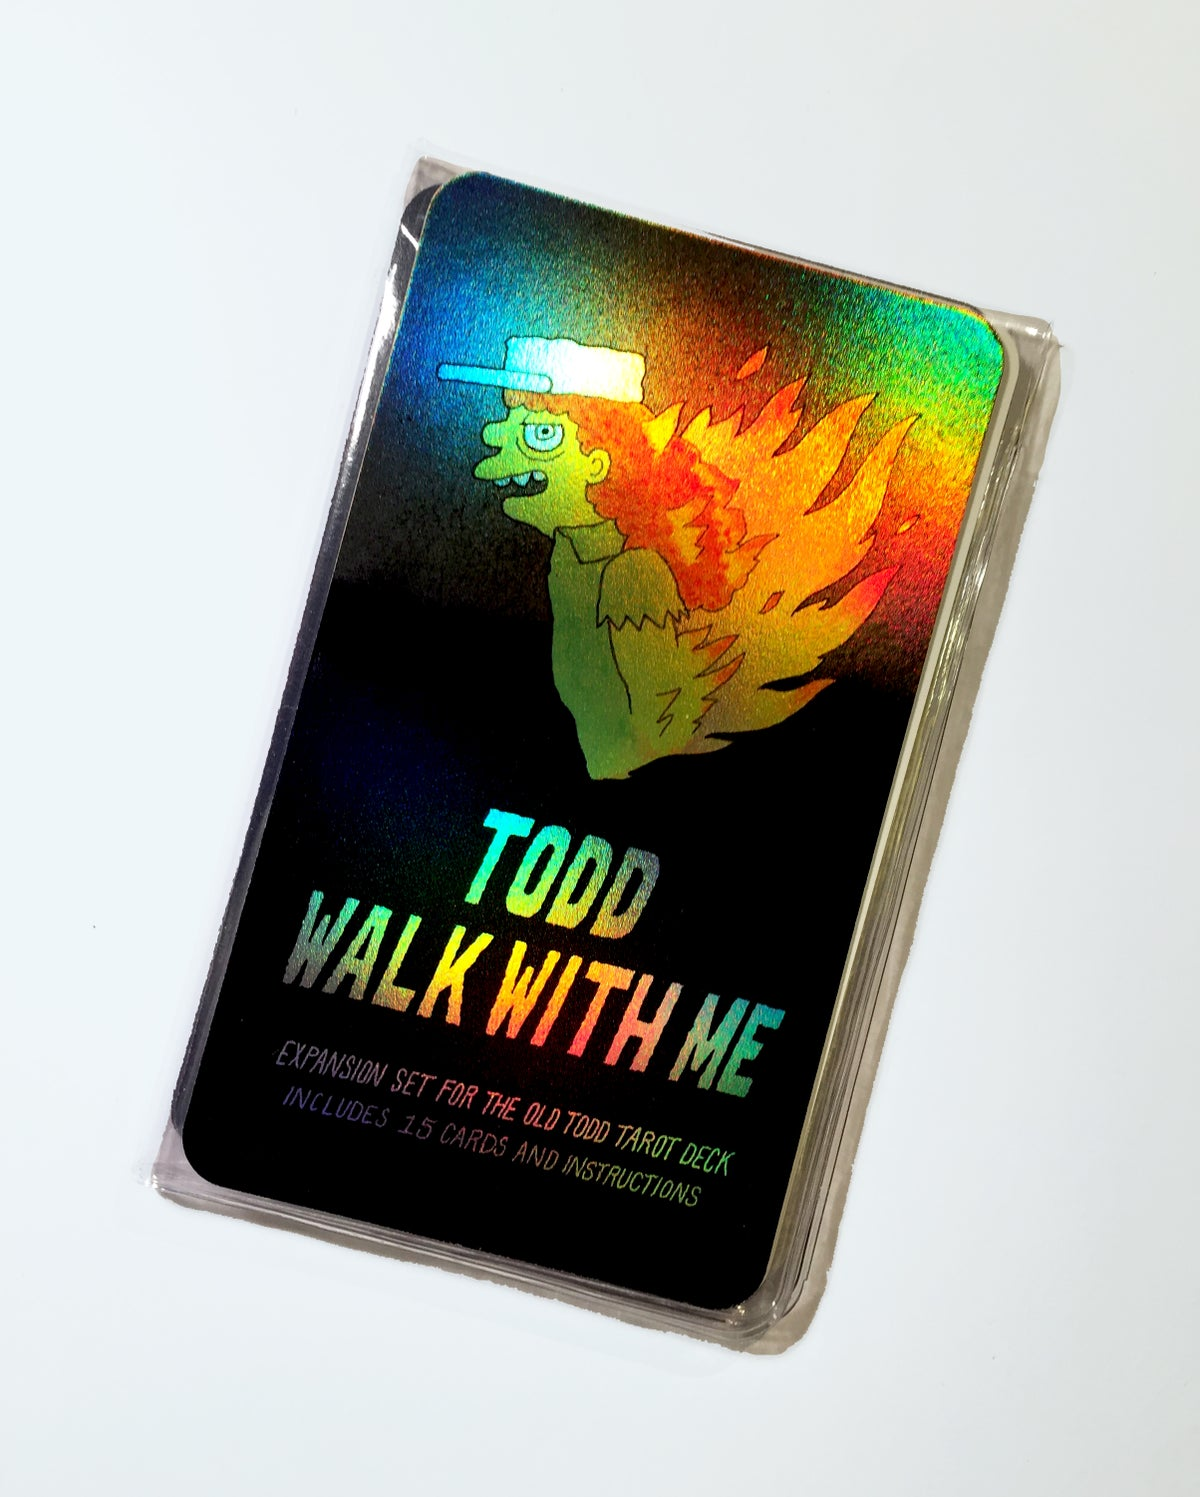 Image of Todd Walk With Me • Expansion Set